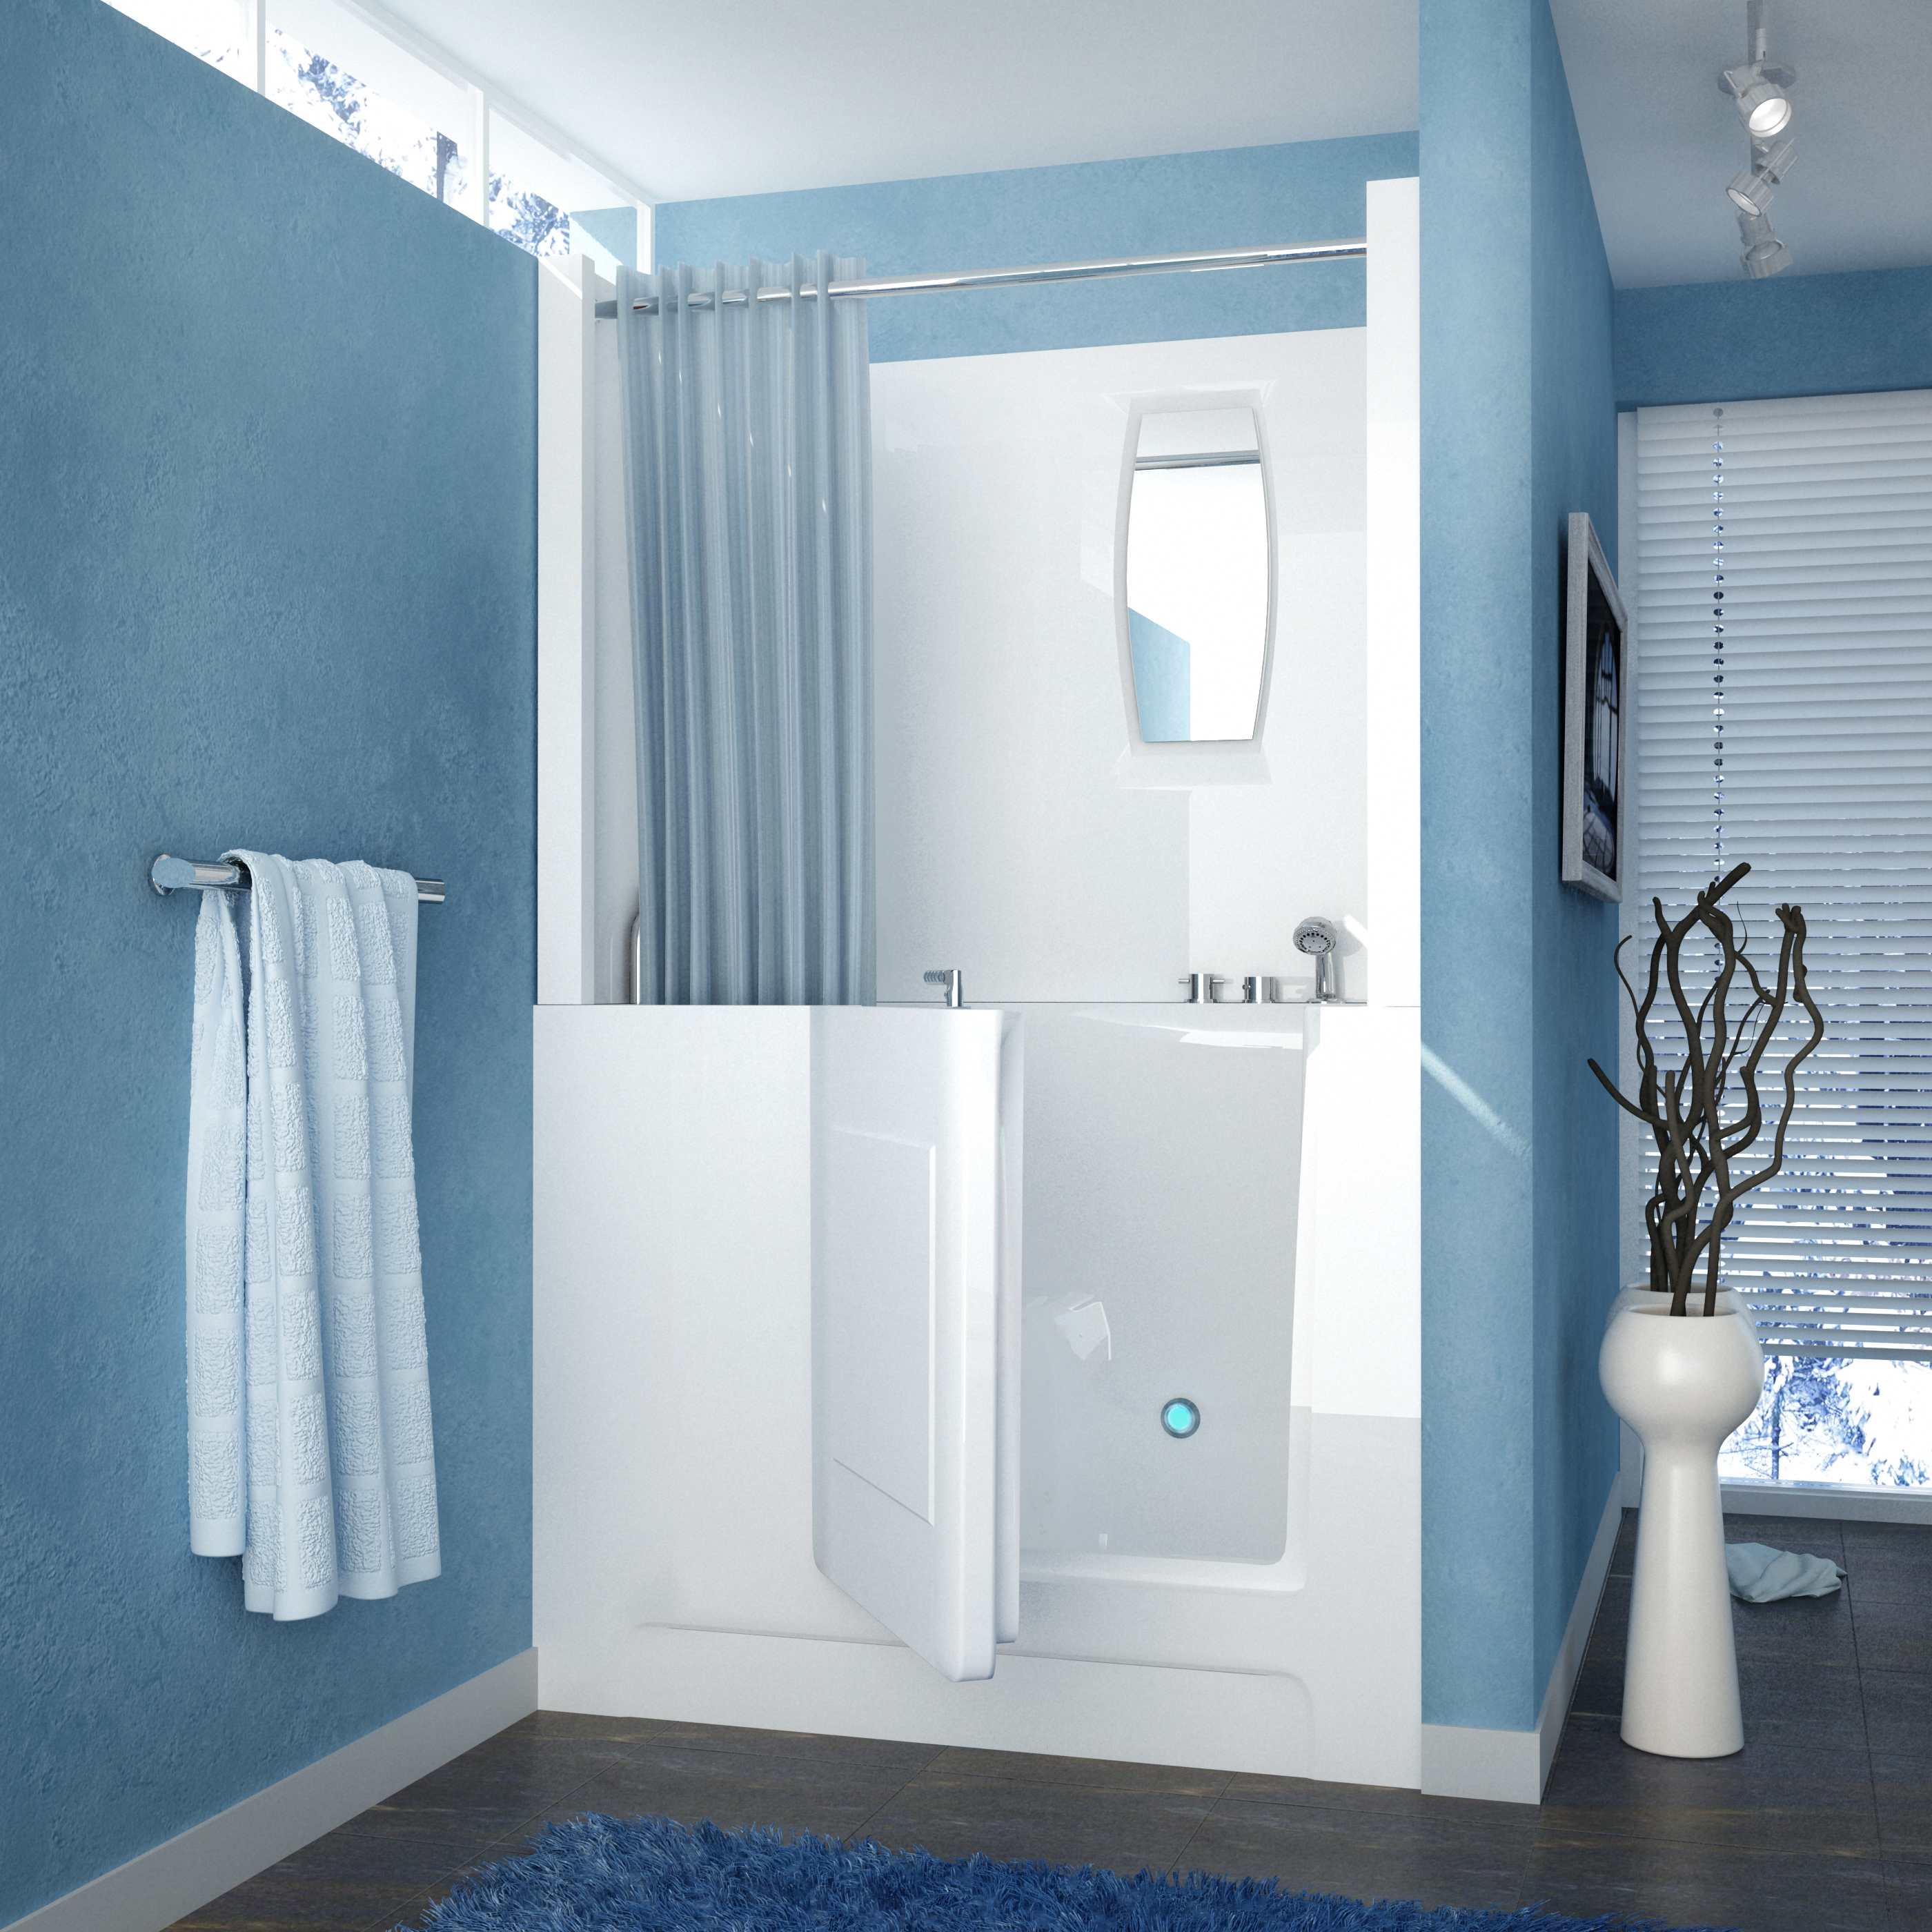 Venzi 47 x 27 Right Drain White Walk In Bathtub Shower Enclosure